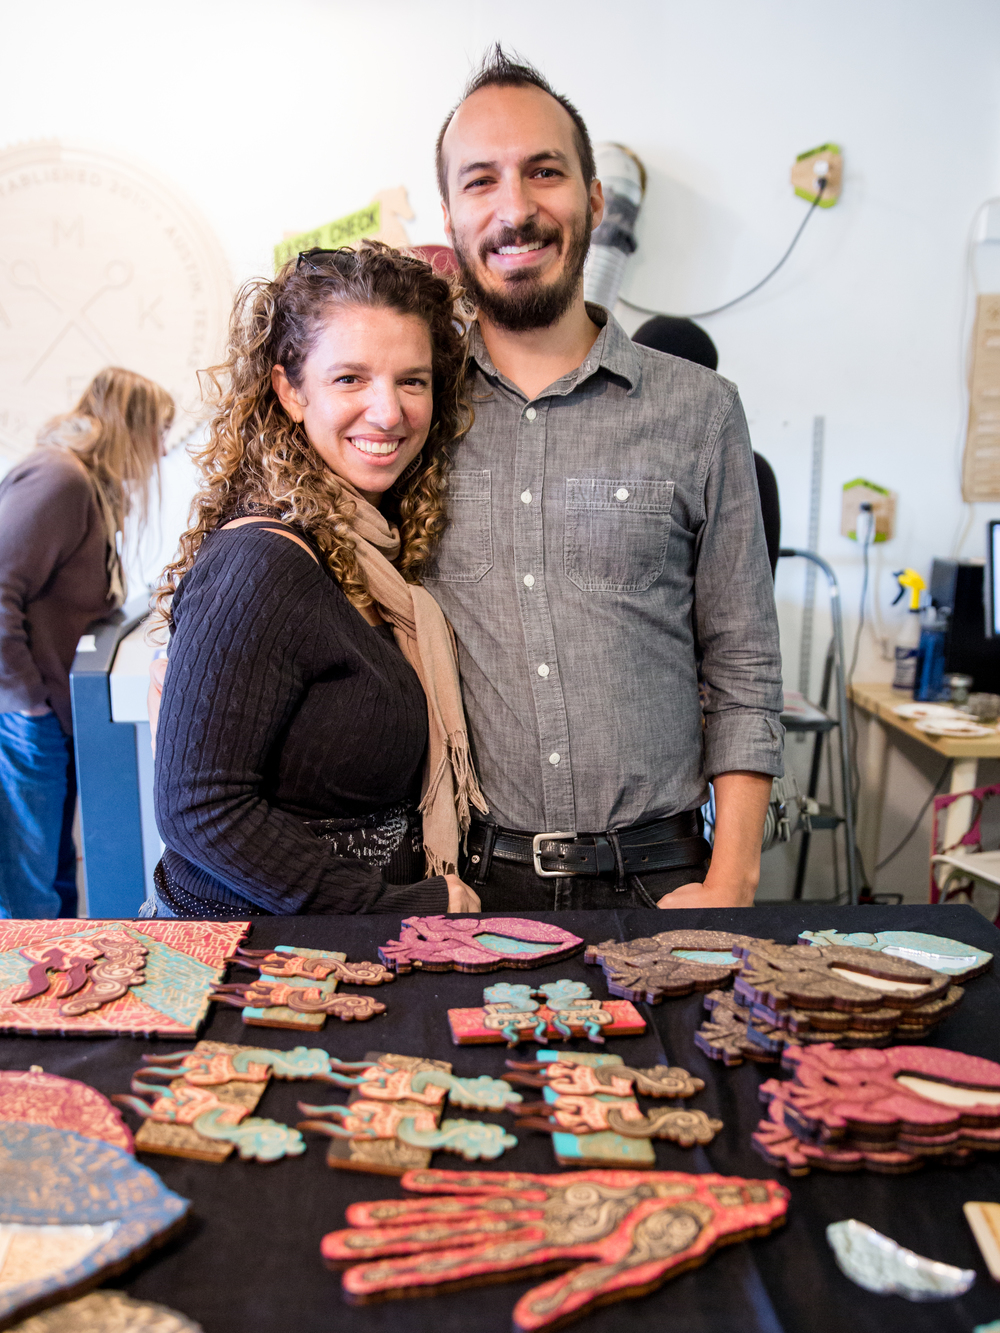 Artist Mark Puente and his wife, Amy Exah, during their E.A.S.T. 2015 show at MakeATX in Austin, Texas.